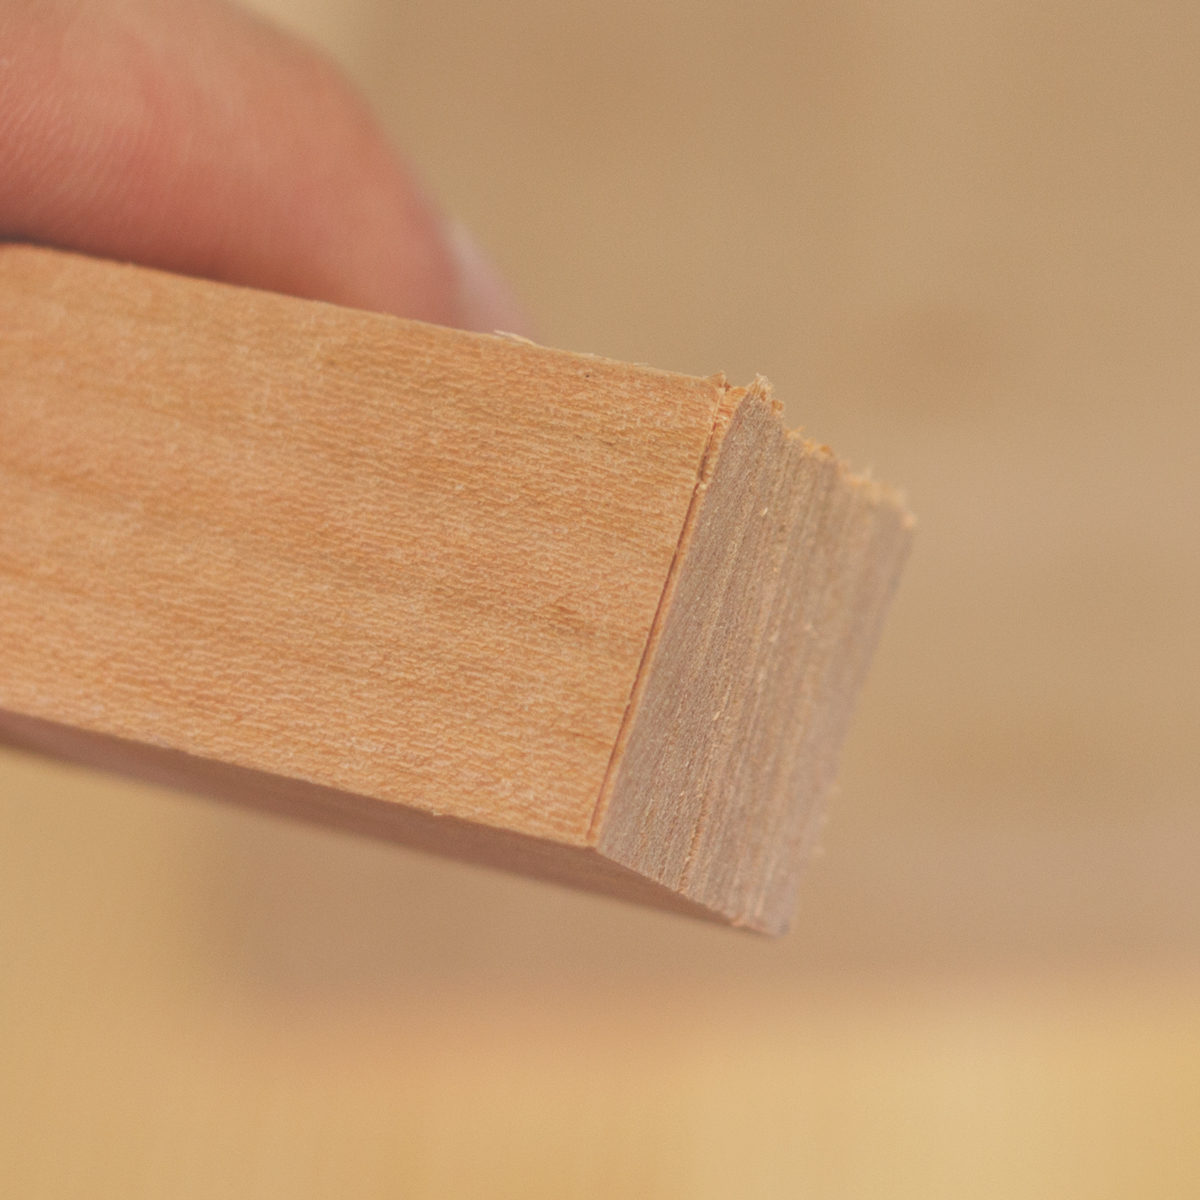 Picture of Cutting Parts to Length